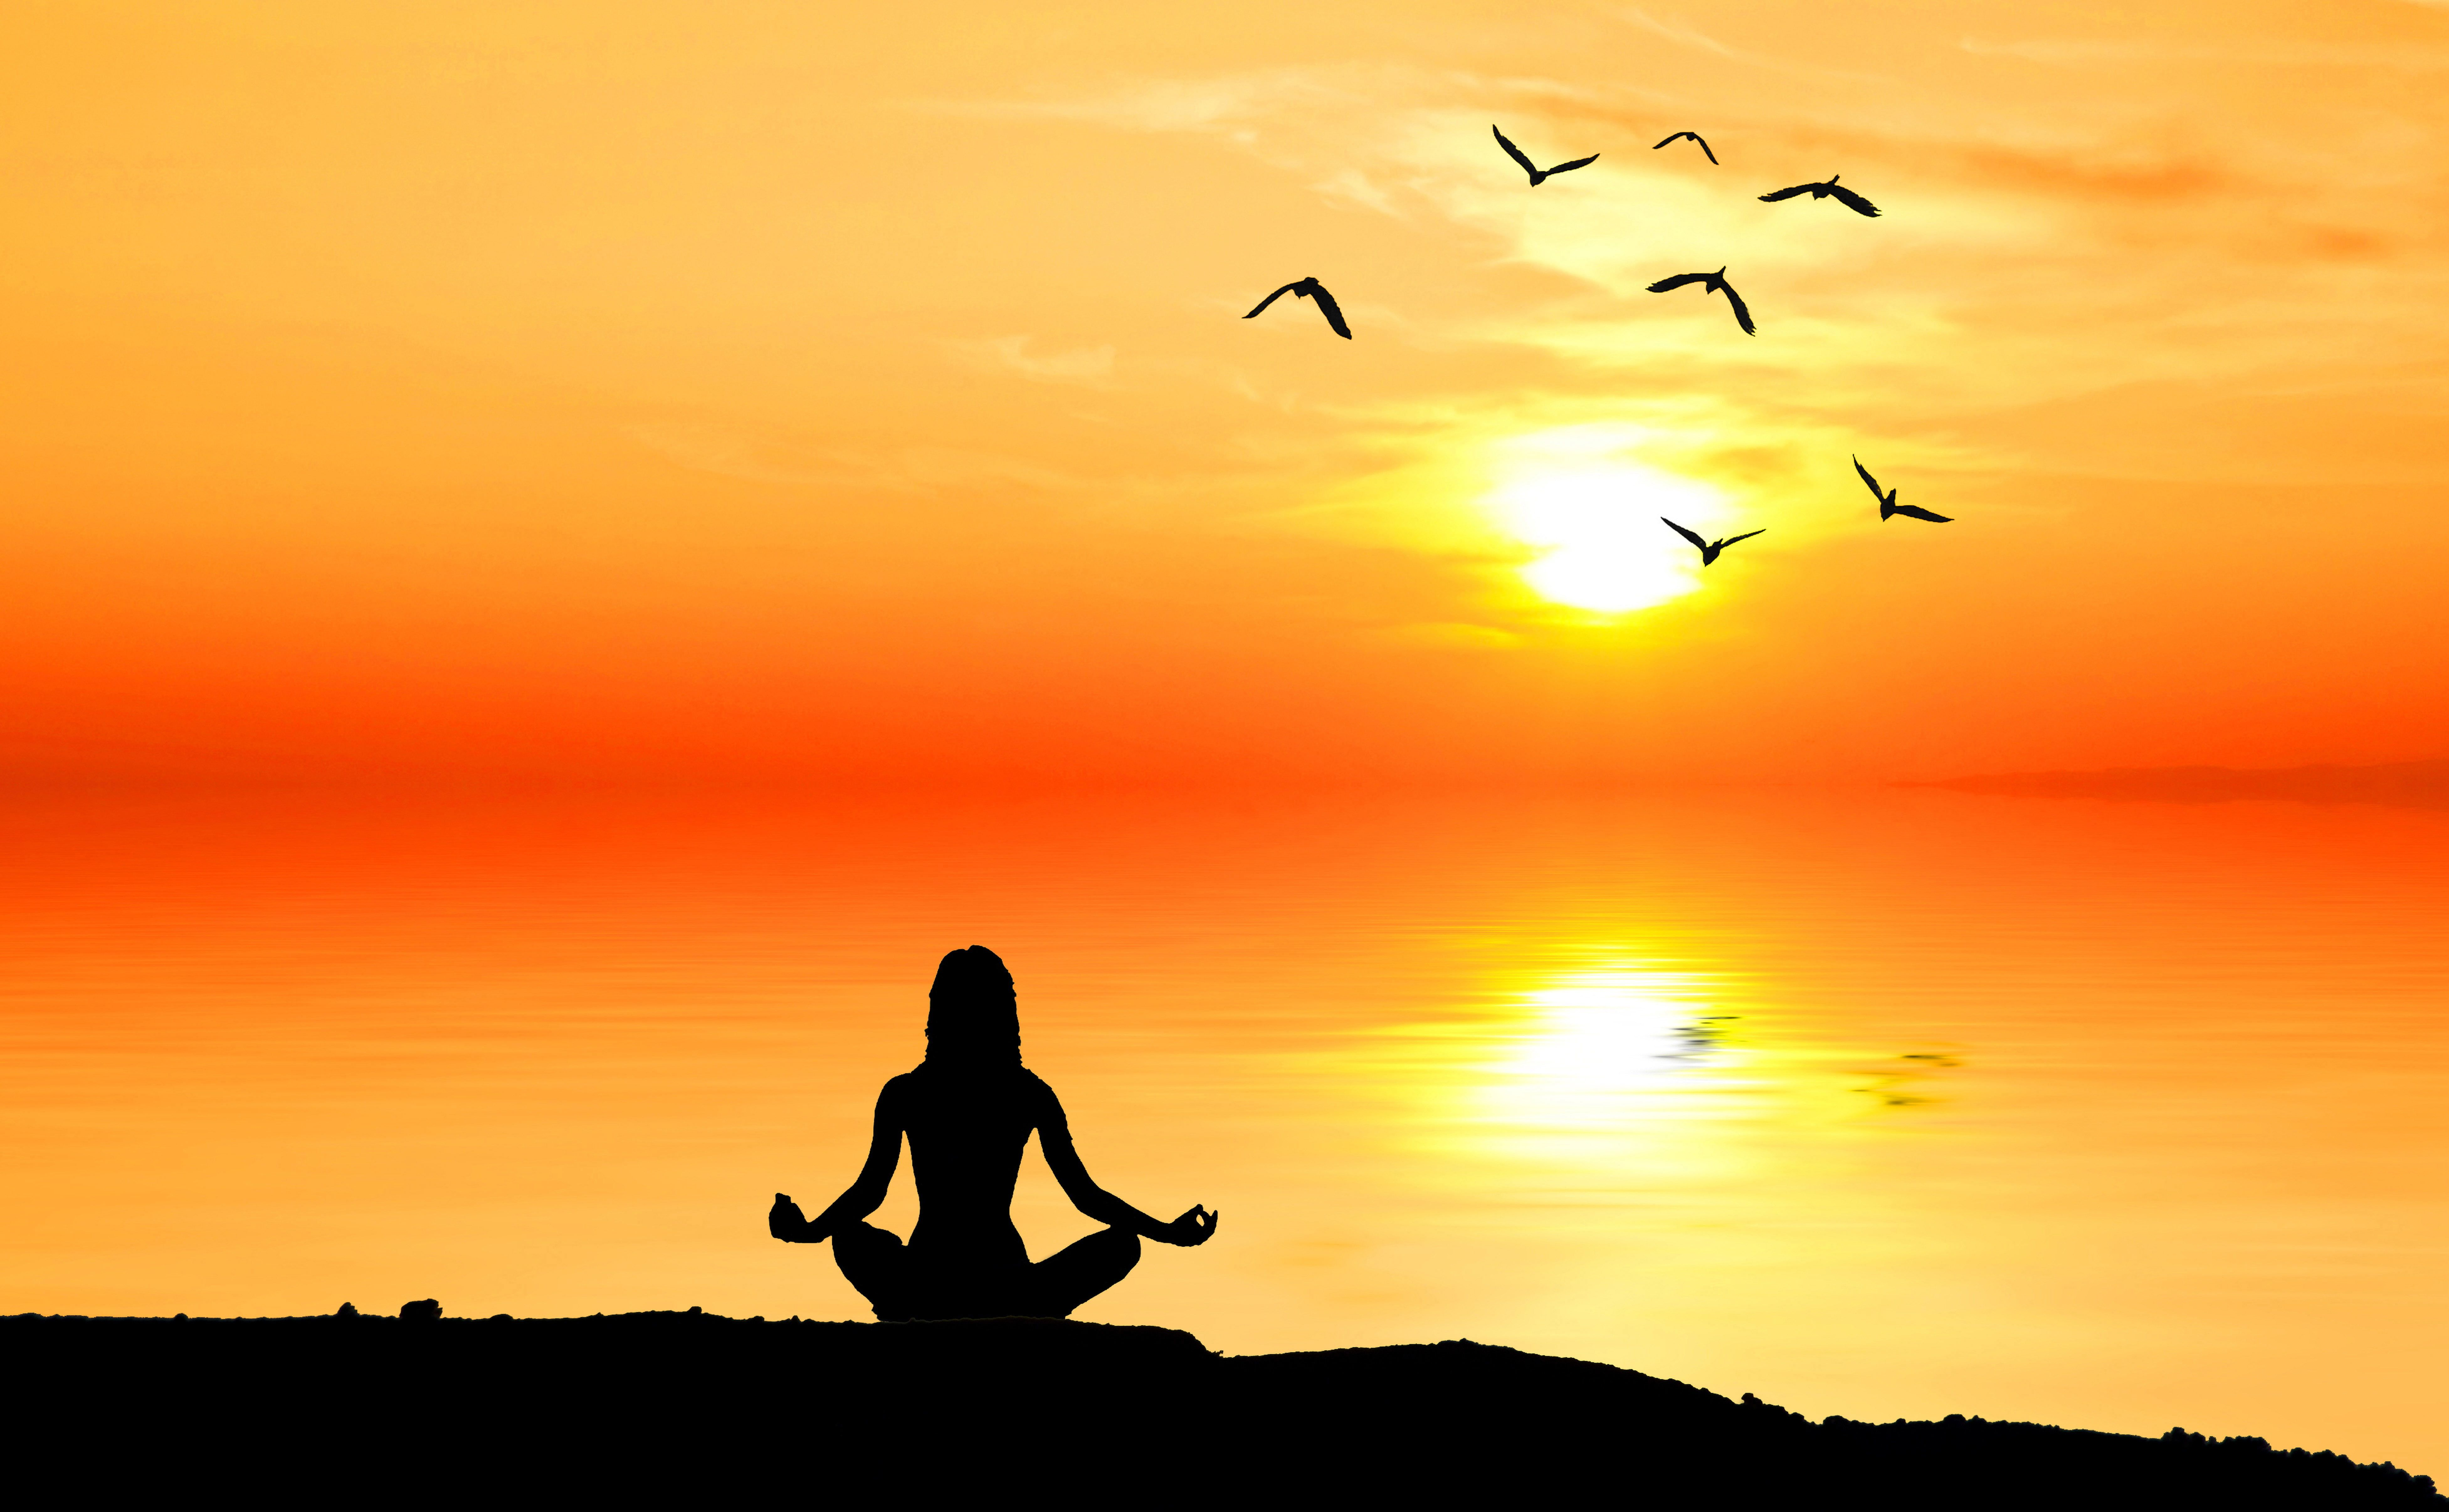 Meditating Woman Silhouette Nature Dawn Meditation People Silhouette Meditation Nature Sun Woman Silhouette Beautiful Backgrounds Facebook Cover Photos